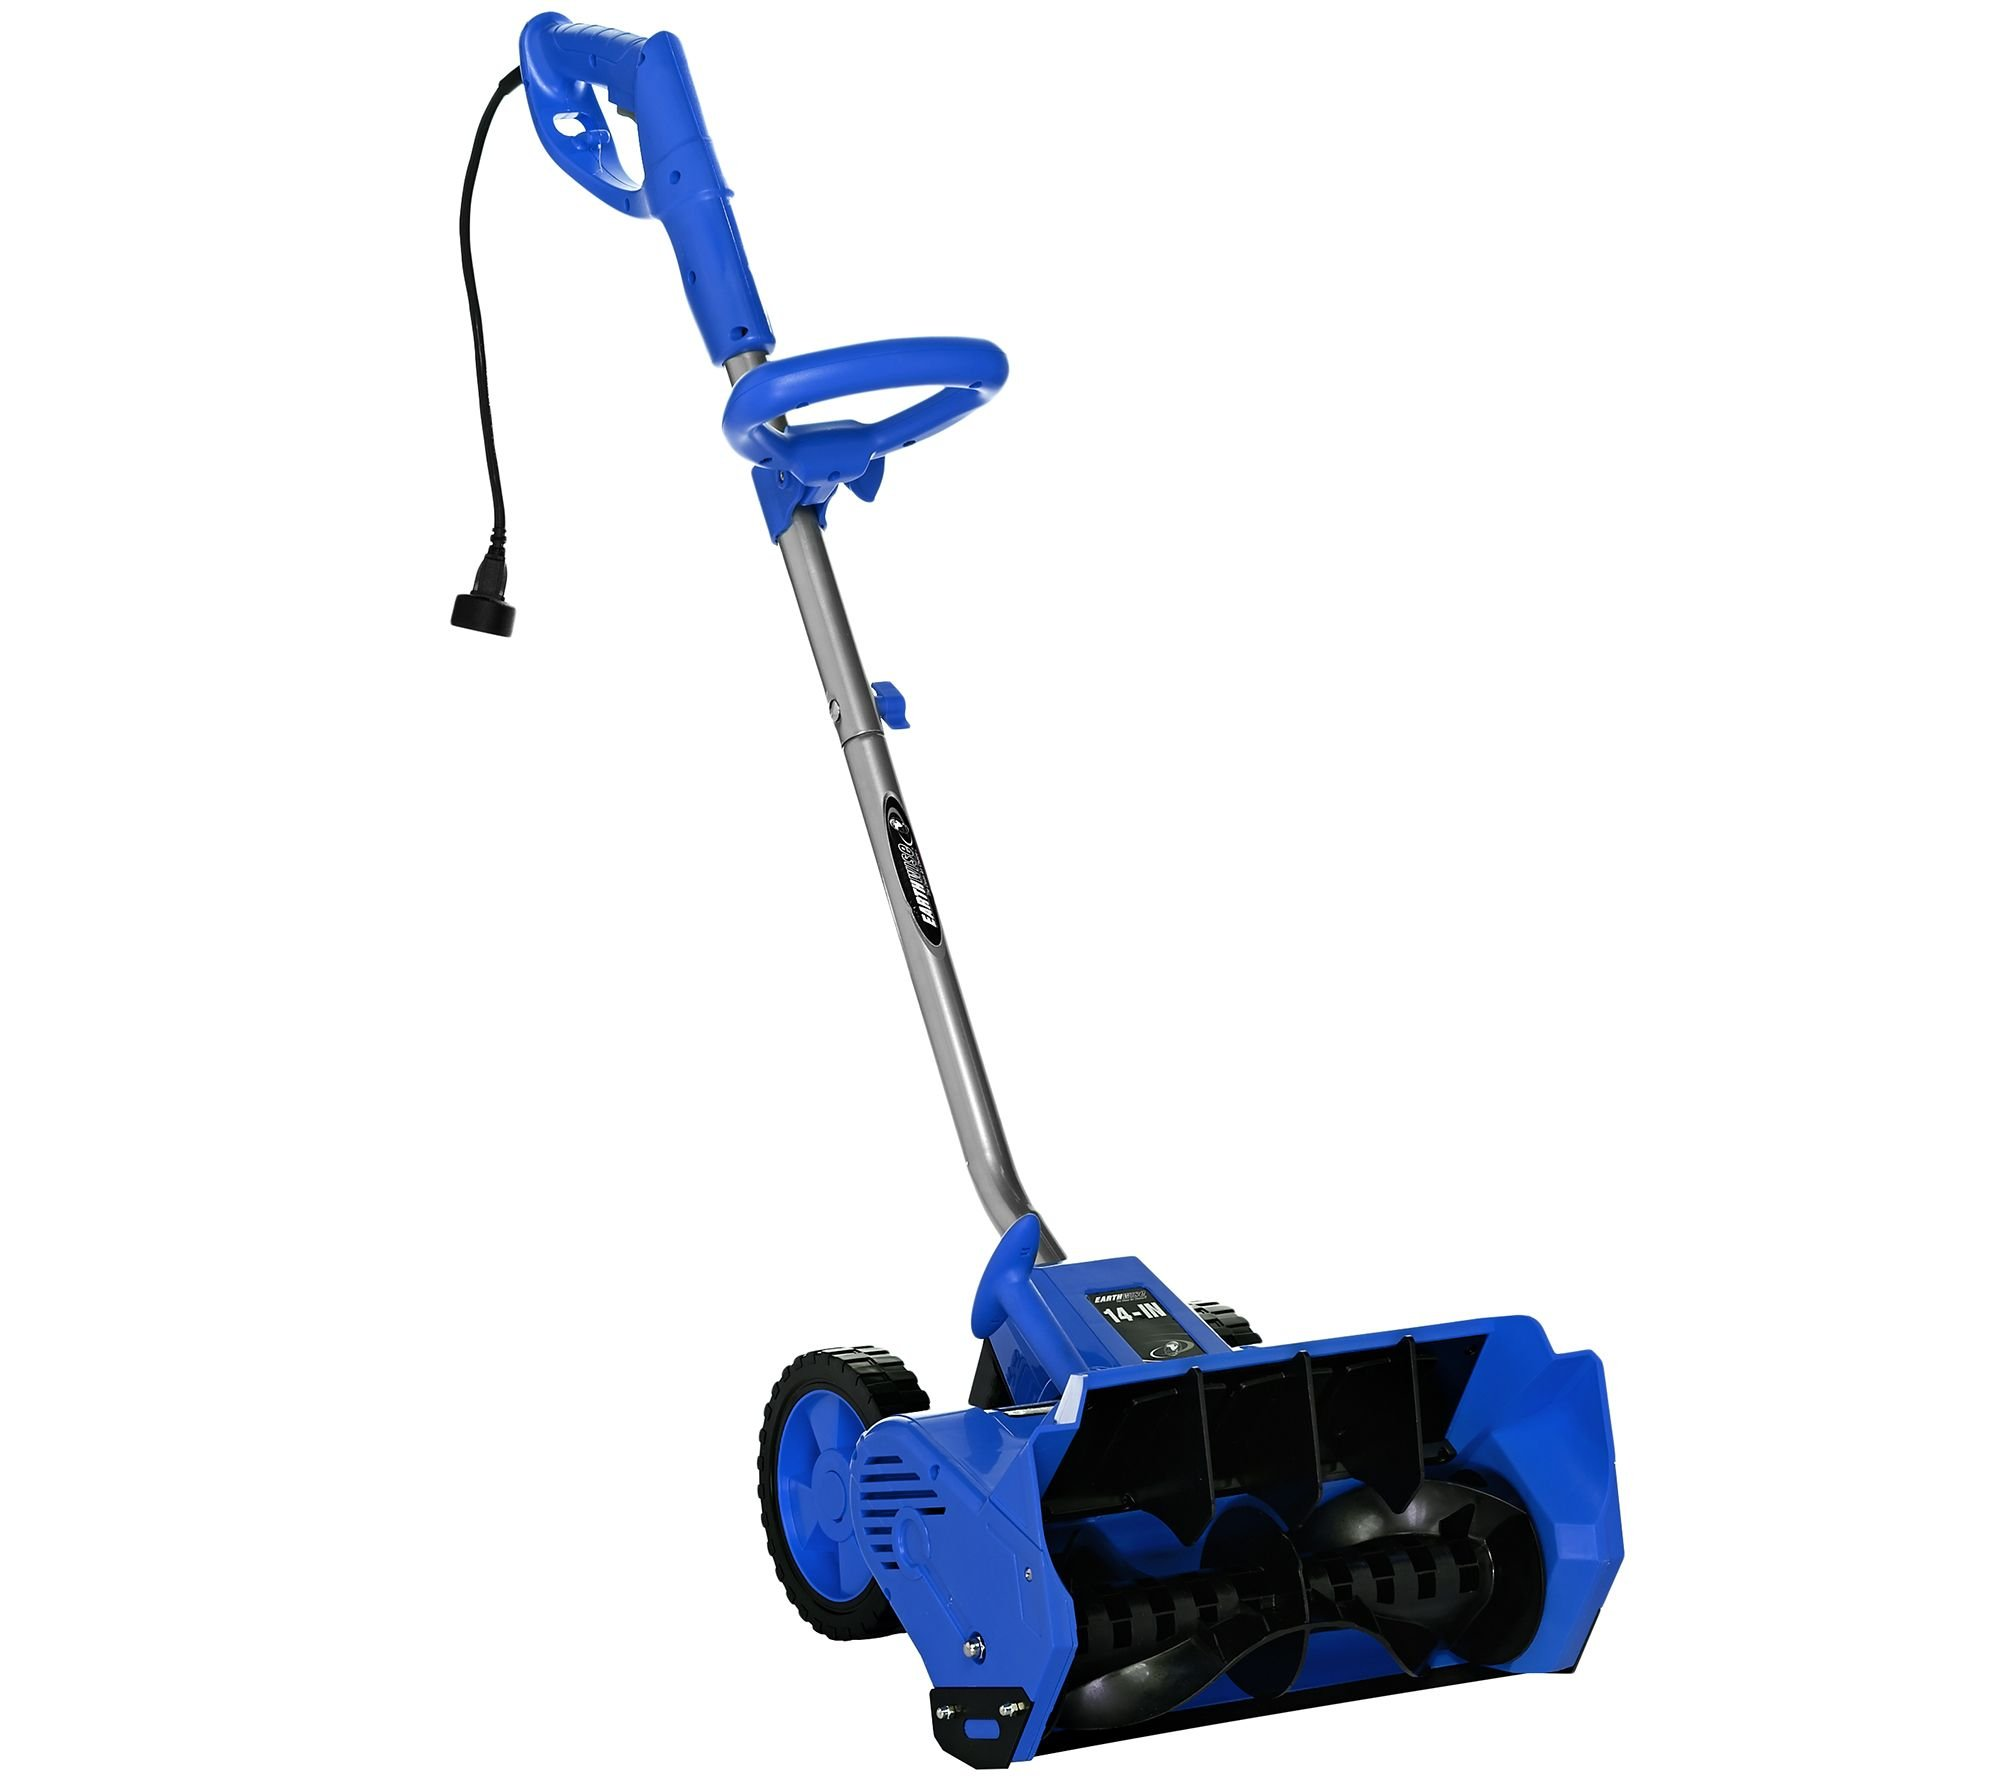 Earthwise Snow Thrower Snow Shovel 12 AMP Corded Electric 14'' - Assorted Colors